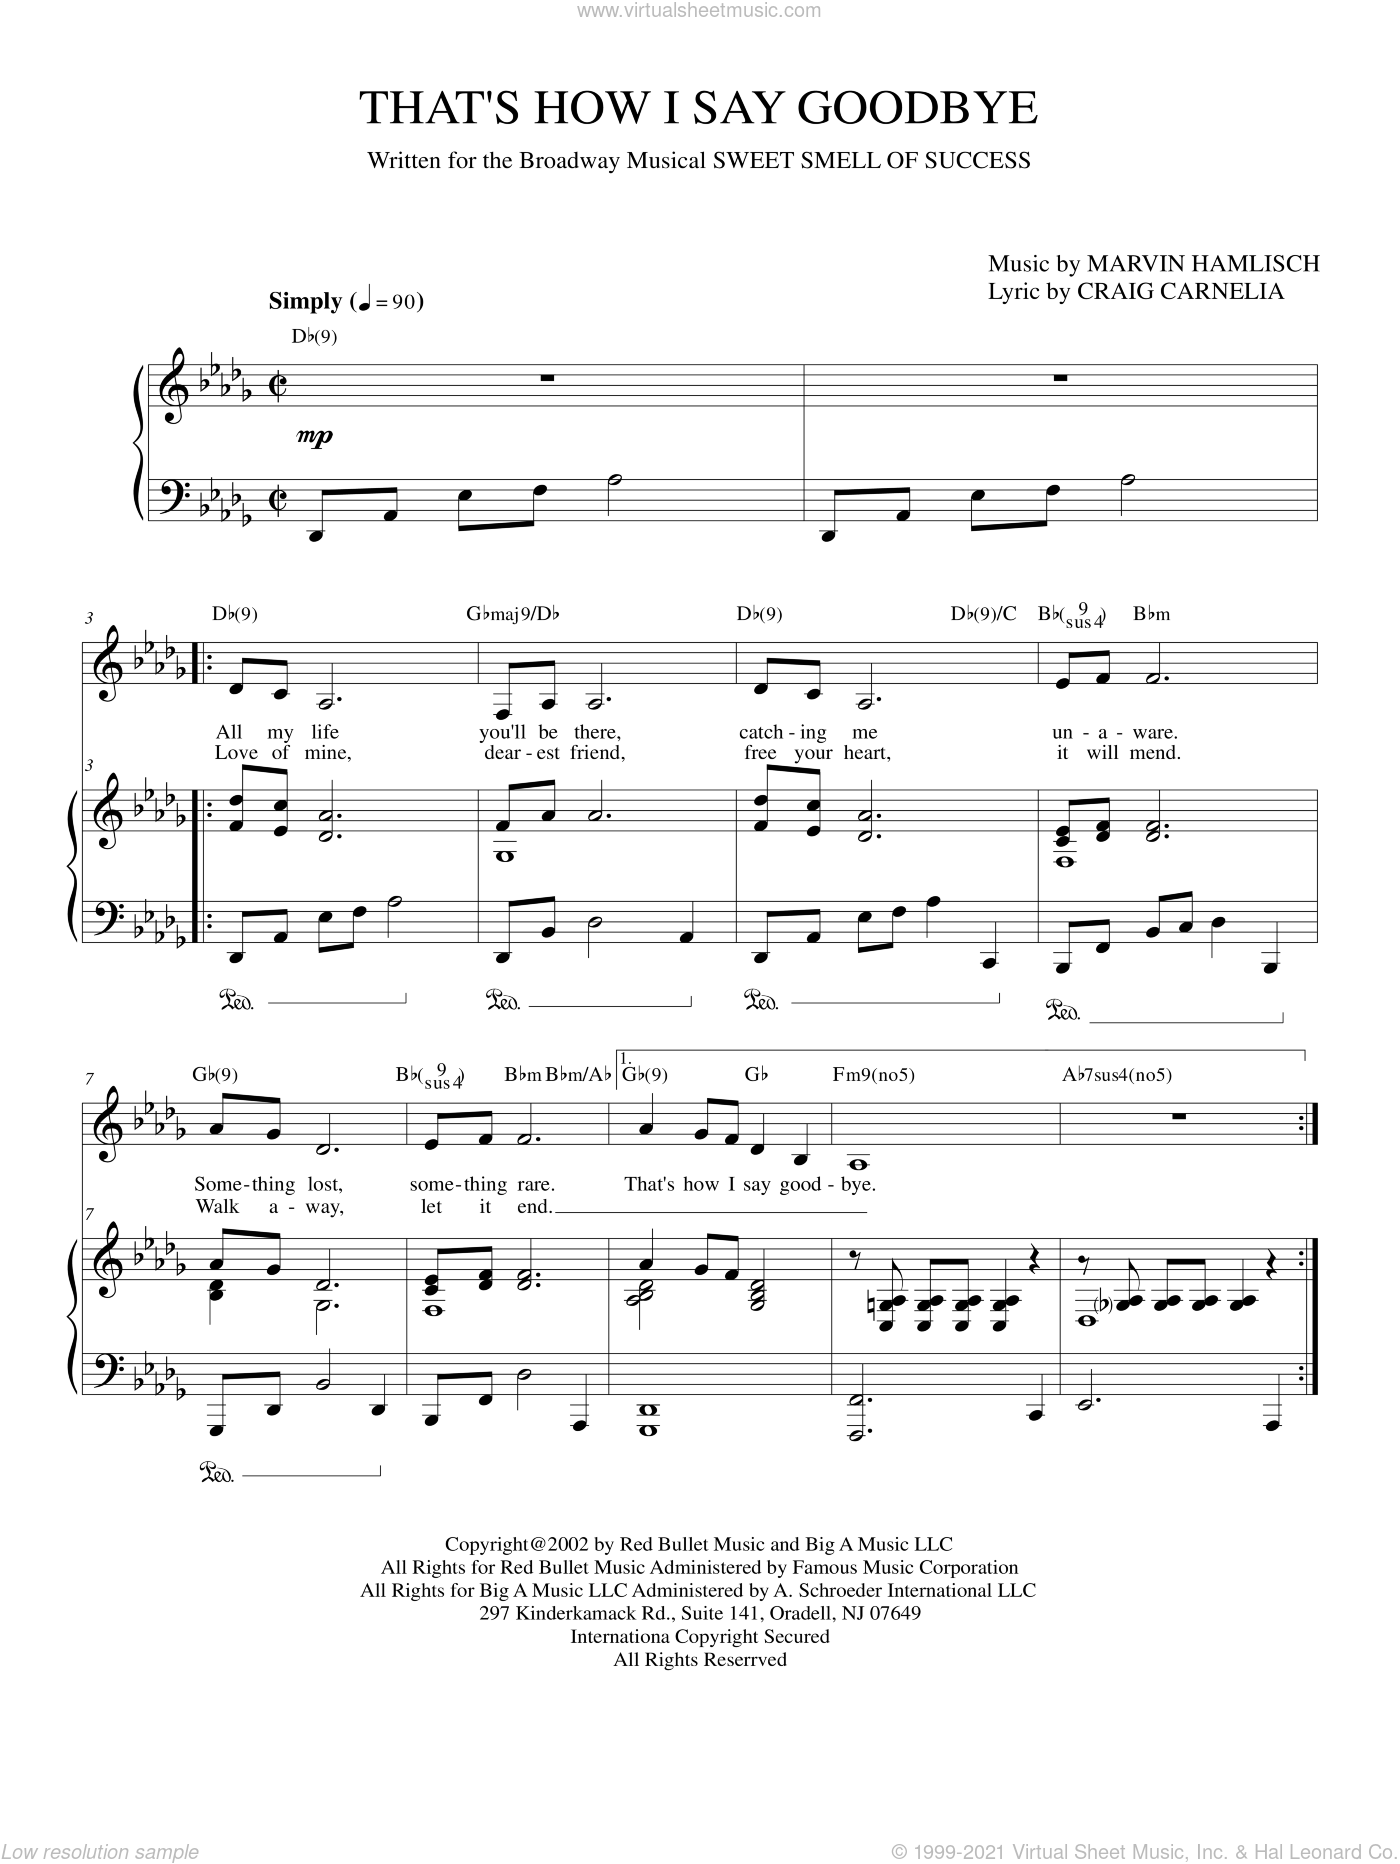 That's How I Say Goodbye sheet music for voice and piano by Marvin Hamlisch and Craig Carnelia, intermediate skill level